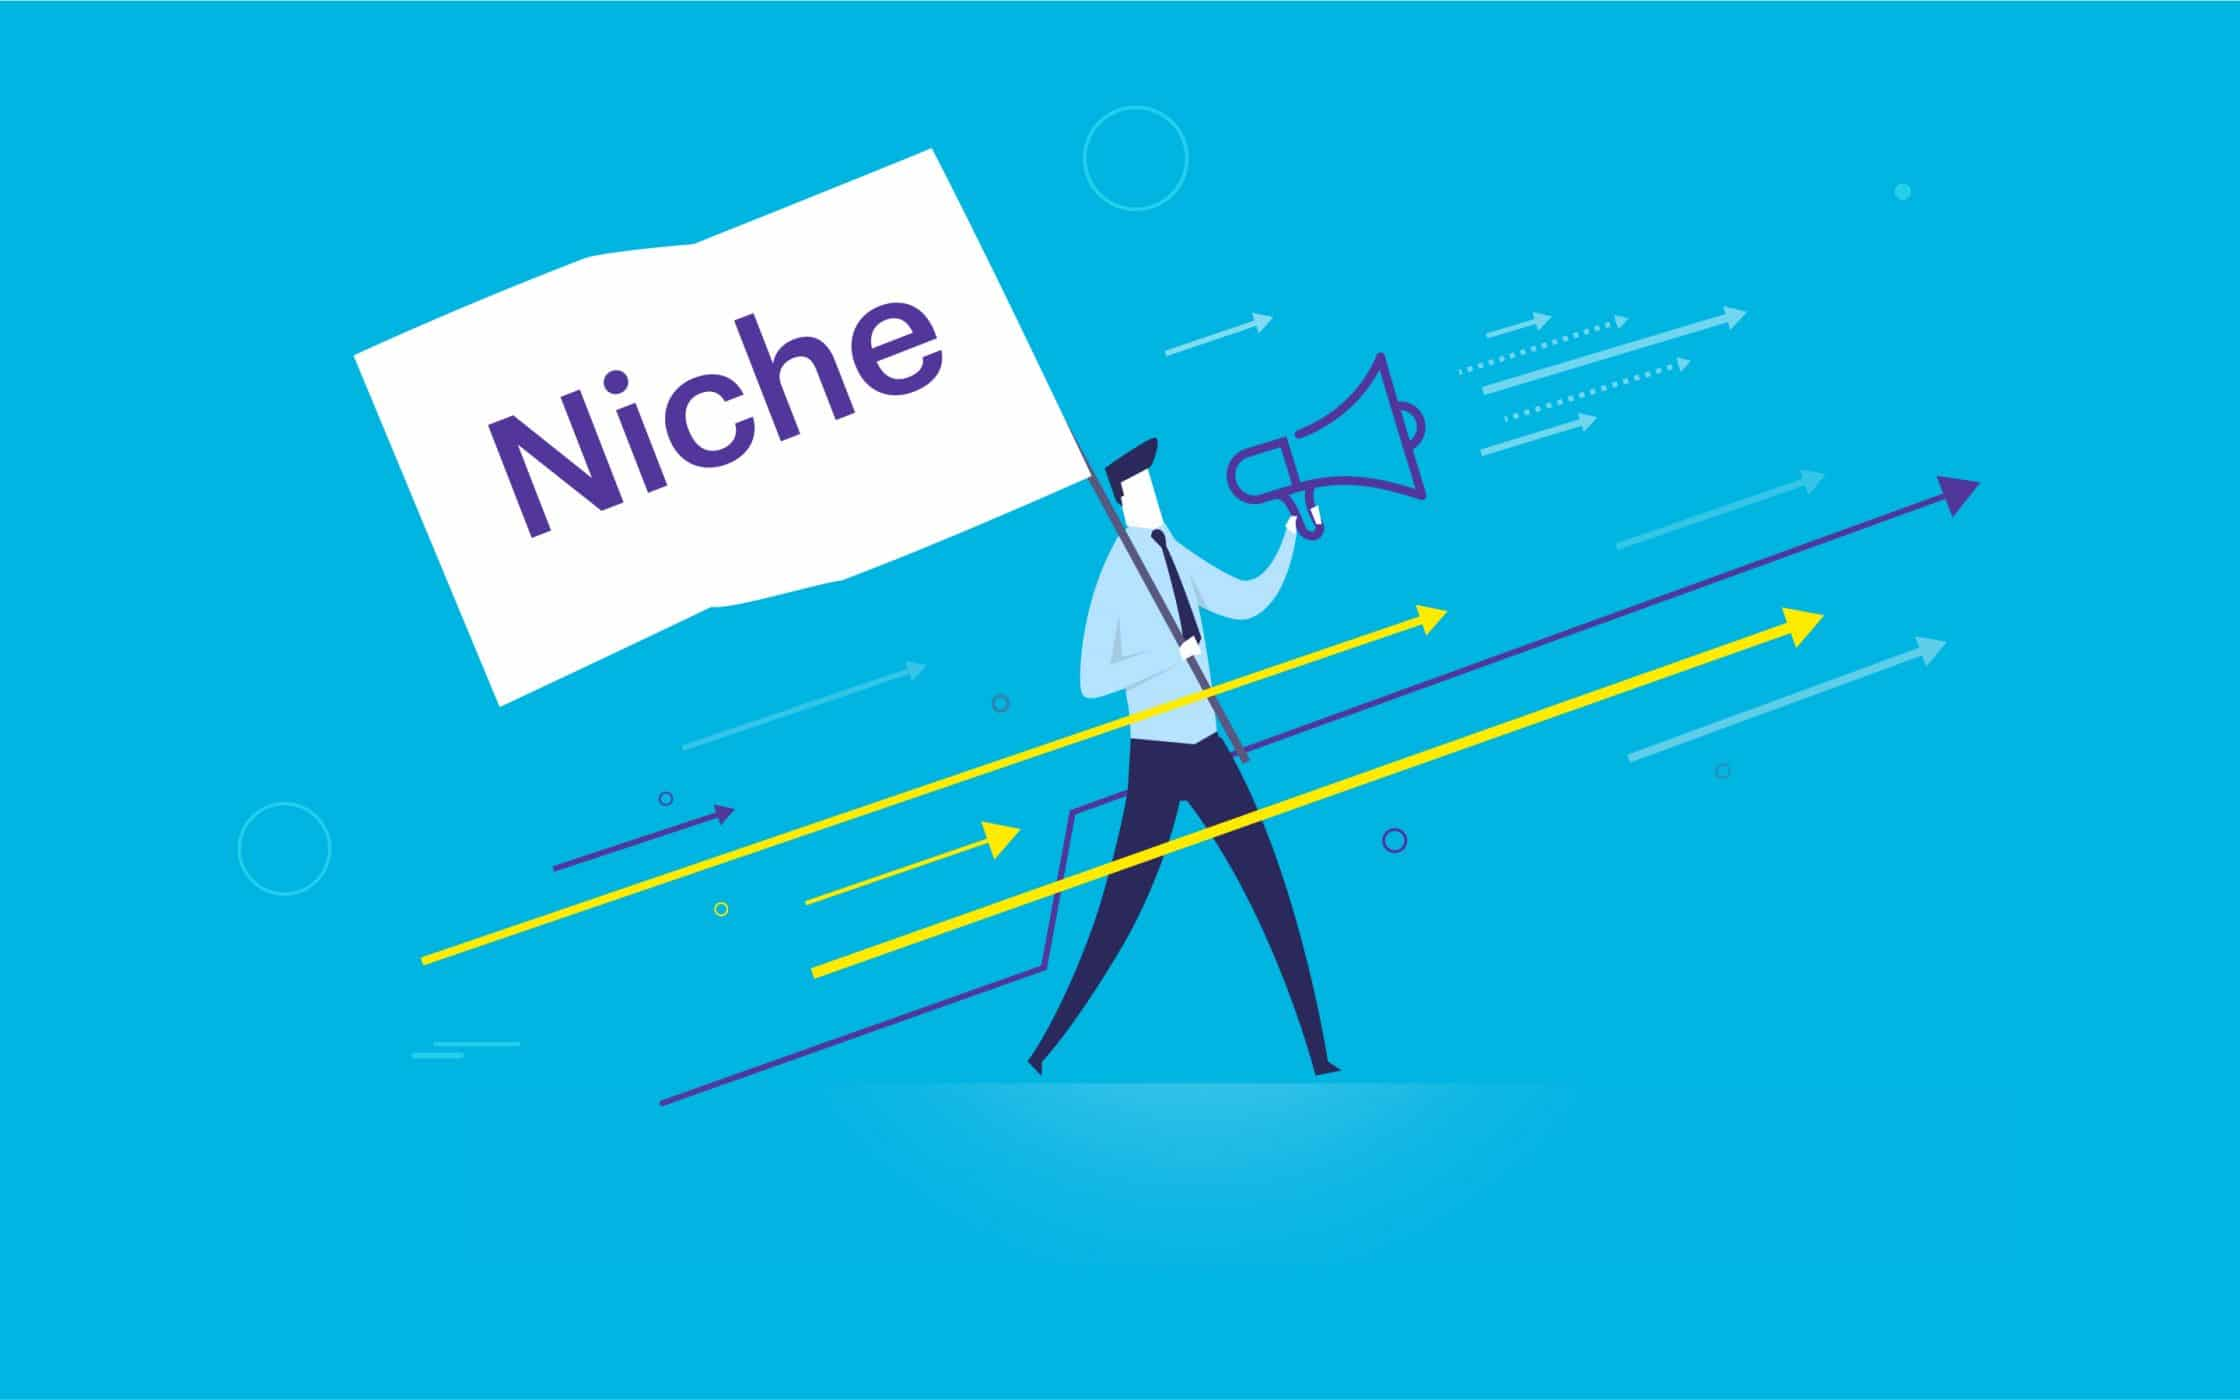 They can help you pick your niche - Hire a Digital Marketing Agency